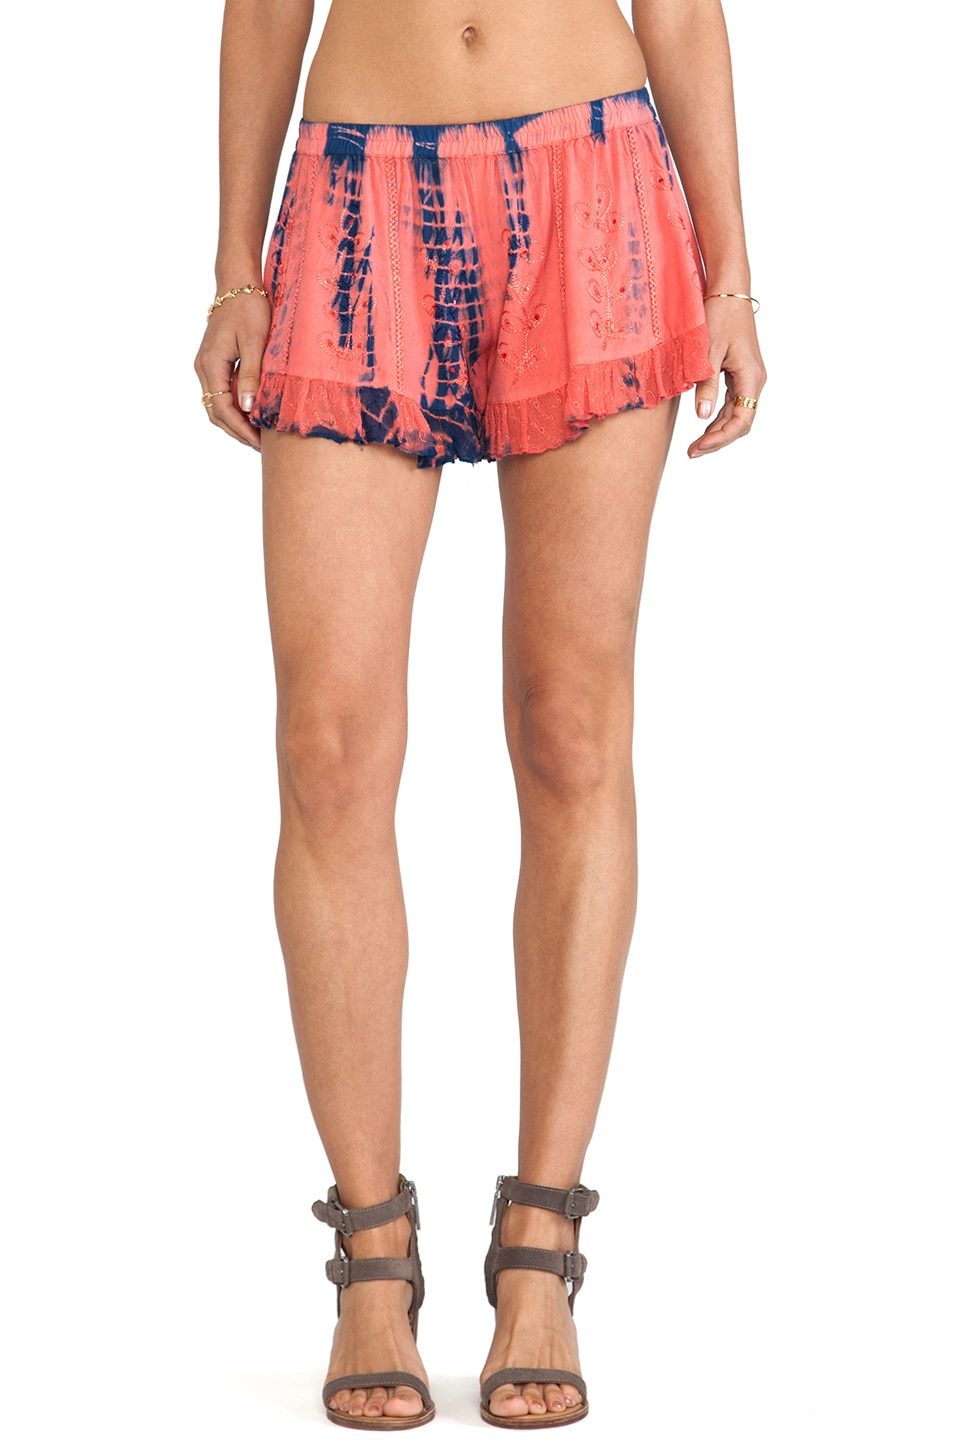 Raga Tie Dye Shorts in Burnt Orange